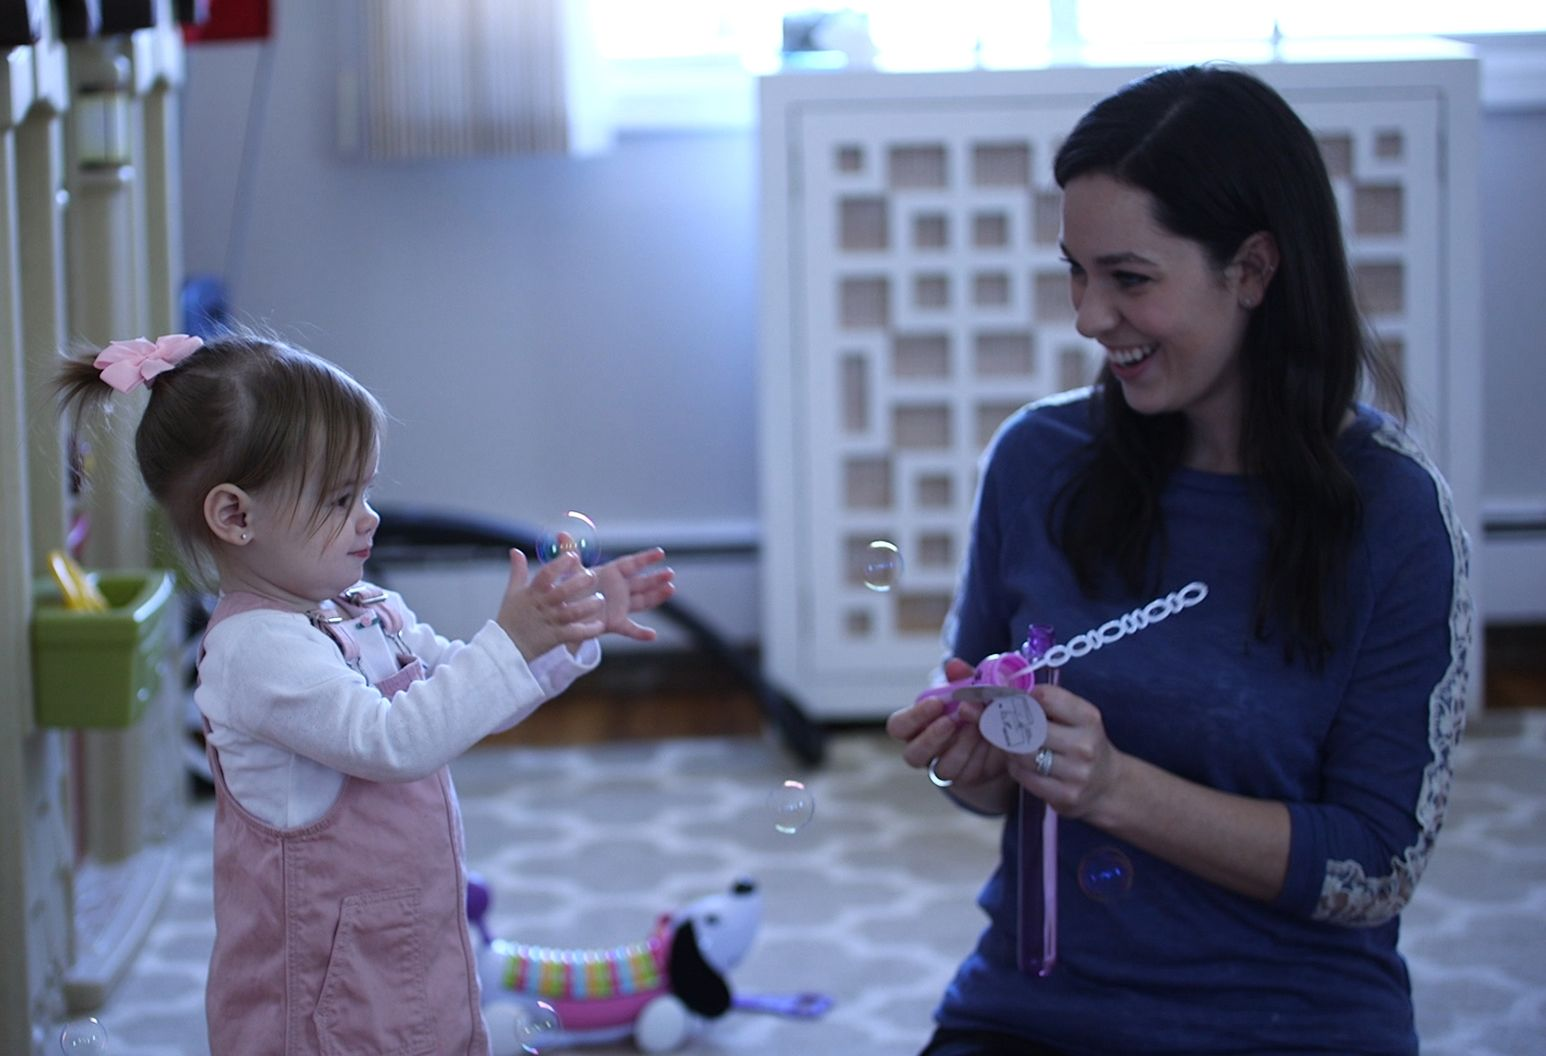 A toddler girl plays with bubbles next to her mom, who is smiling. The little girl is wearing pink overalls with a pink bow in her hair.